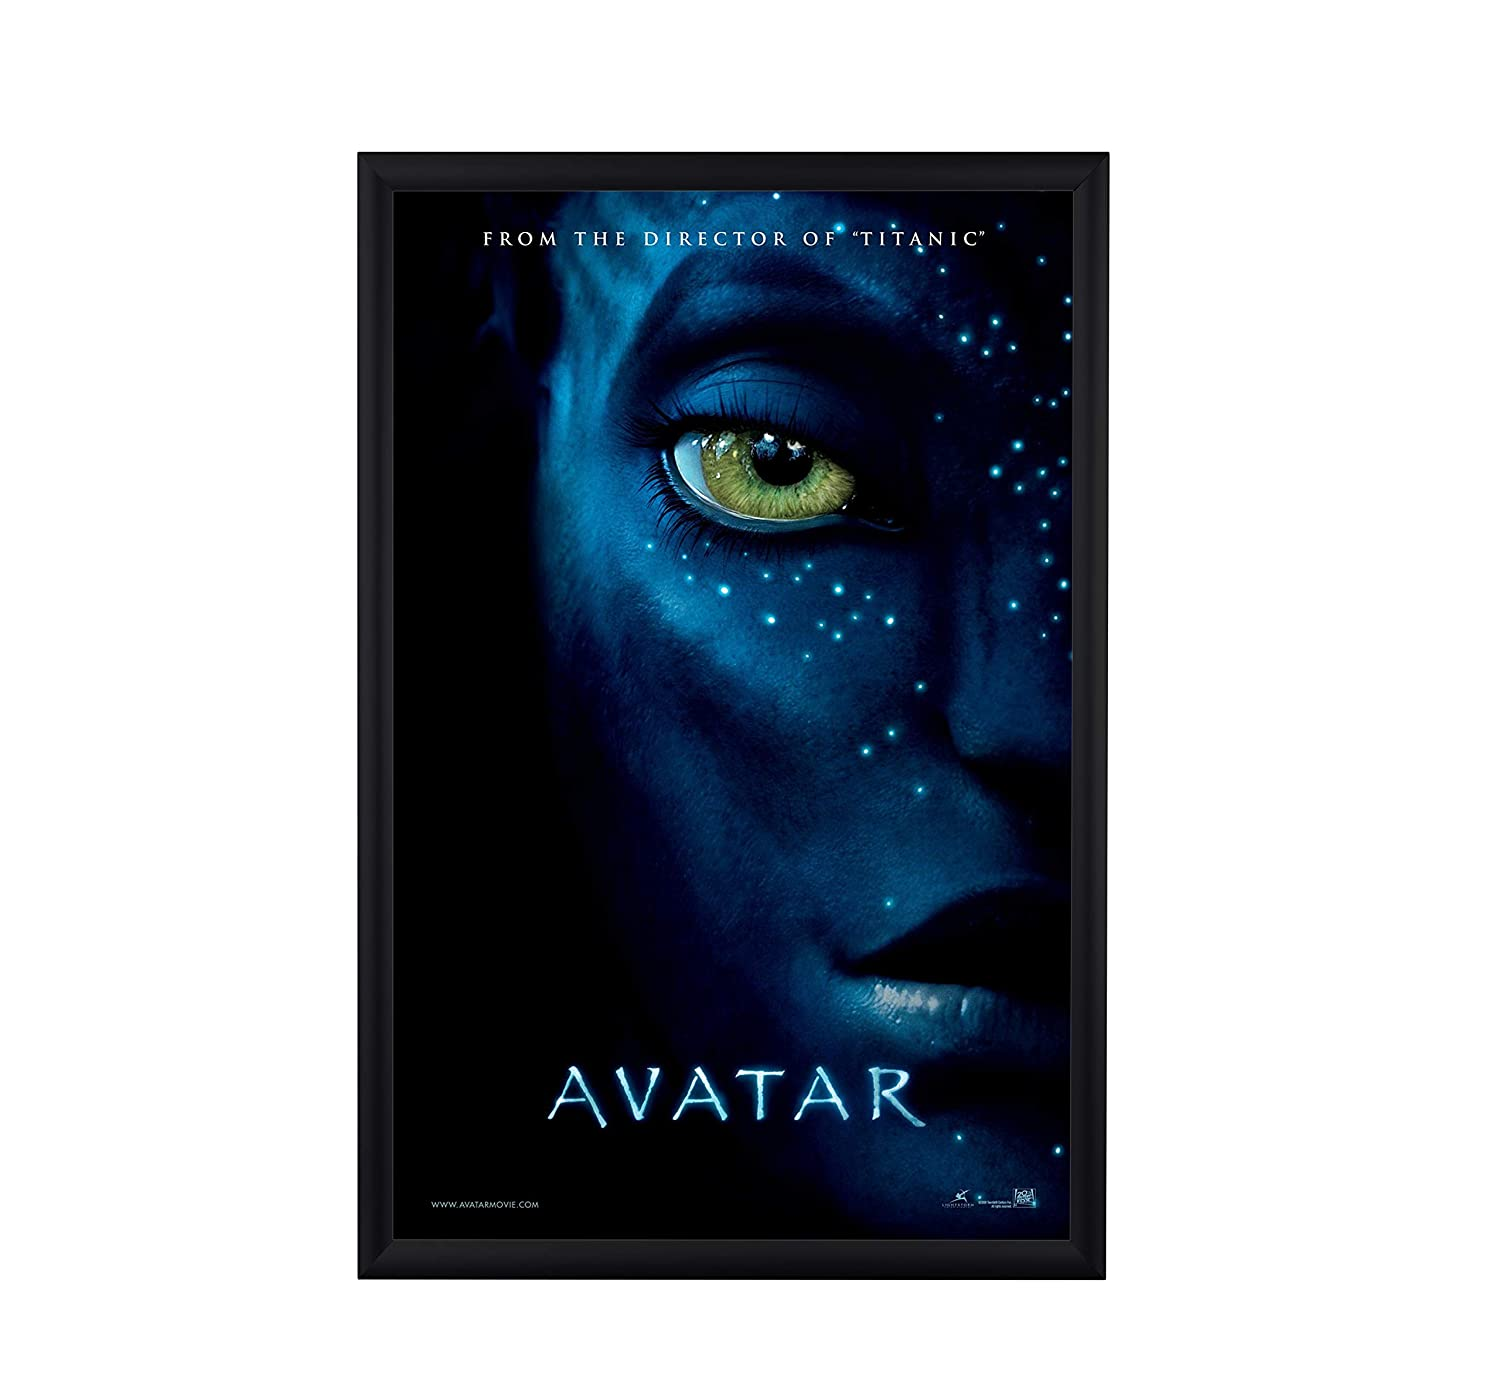 """BNV Movie Poster Frame 24x36 Inches, Black 1"""" Aluminum Profile,Front Load Snap Frame, Wall Mounting, Portrait and Landscape Mode, Easy Installation, Anti-Glare, PVC Cover, Lightweight"""